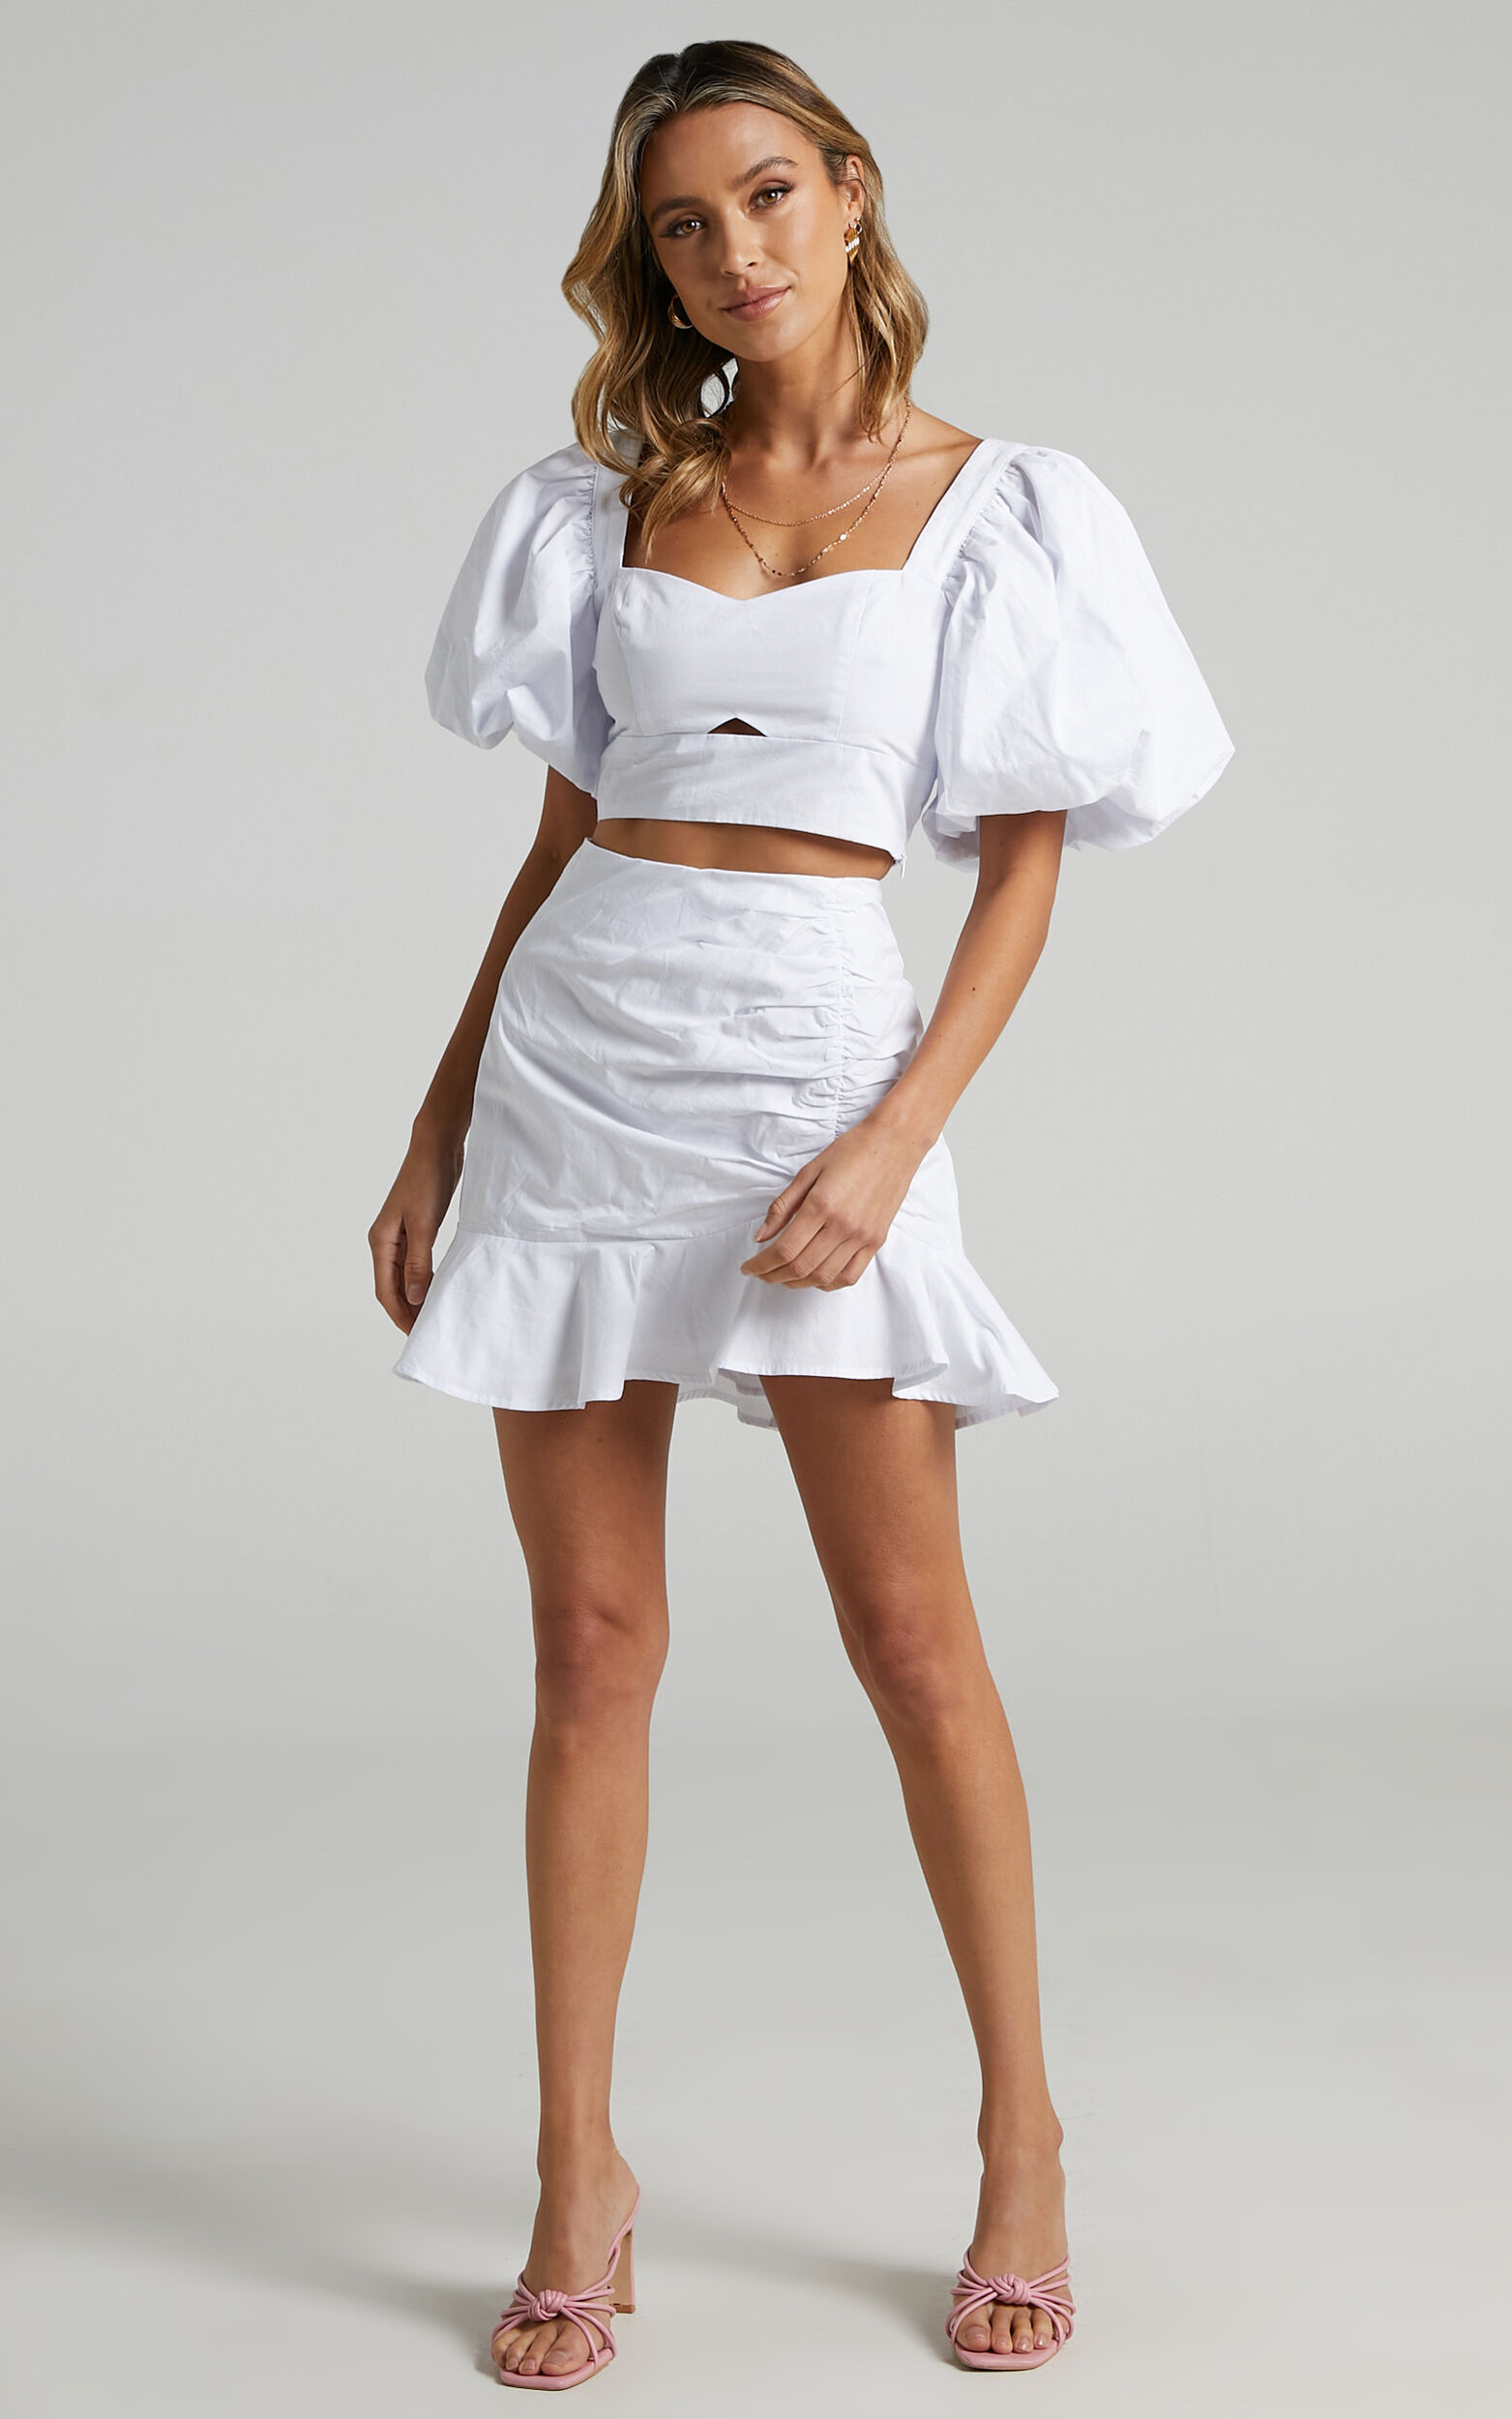 Astarte Two Piece Set in White - 06, WHT4, super-hi-res image number null